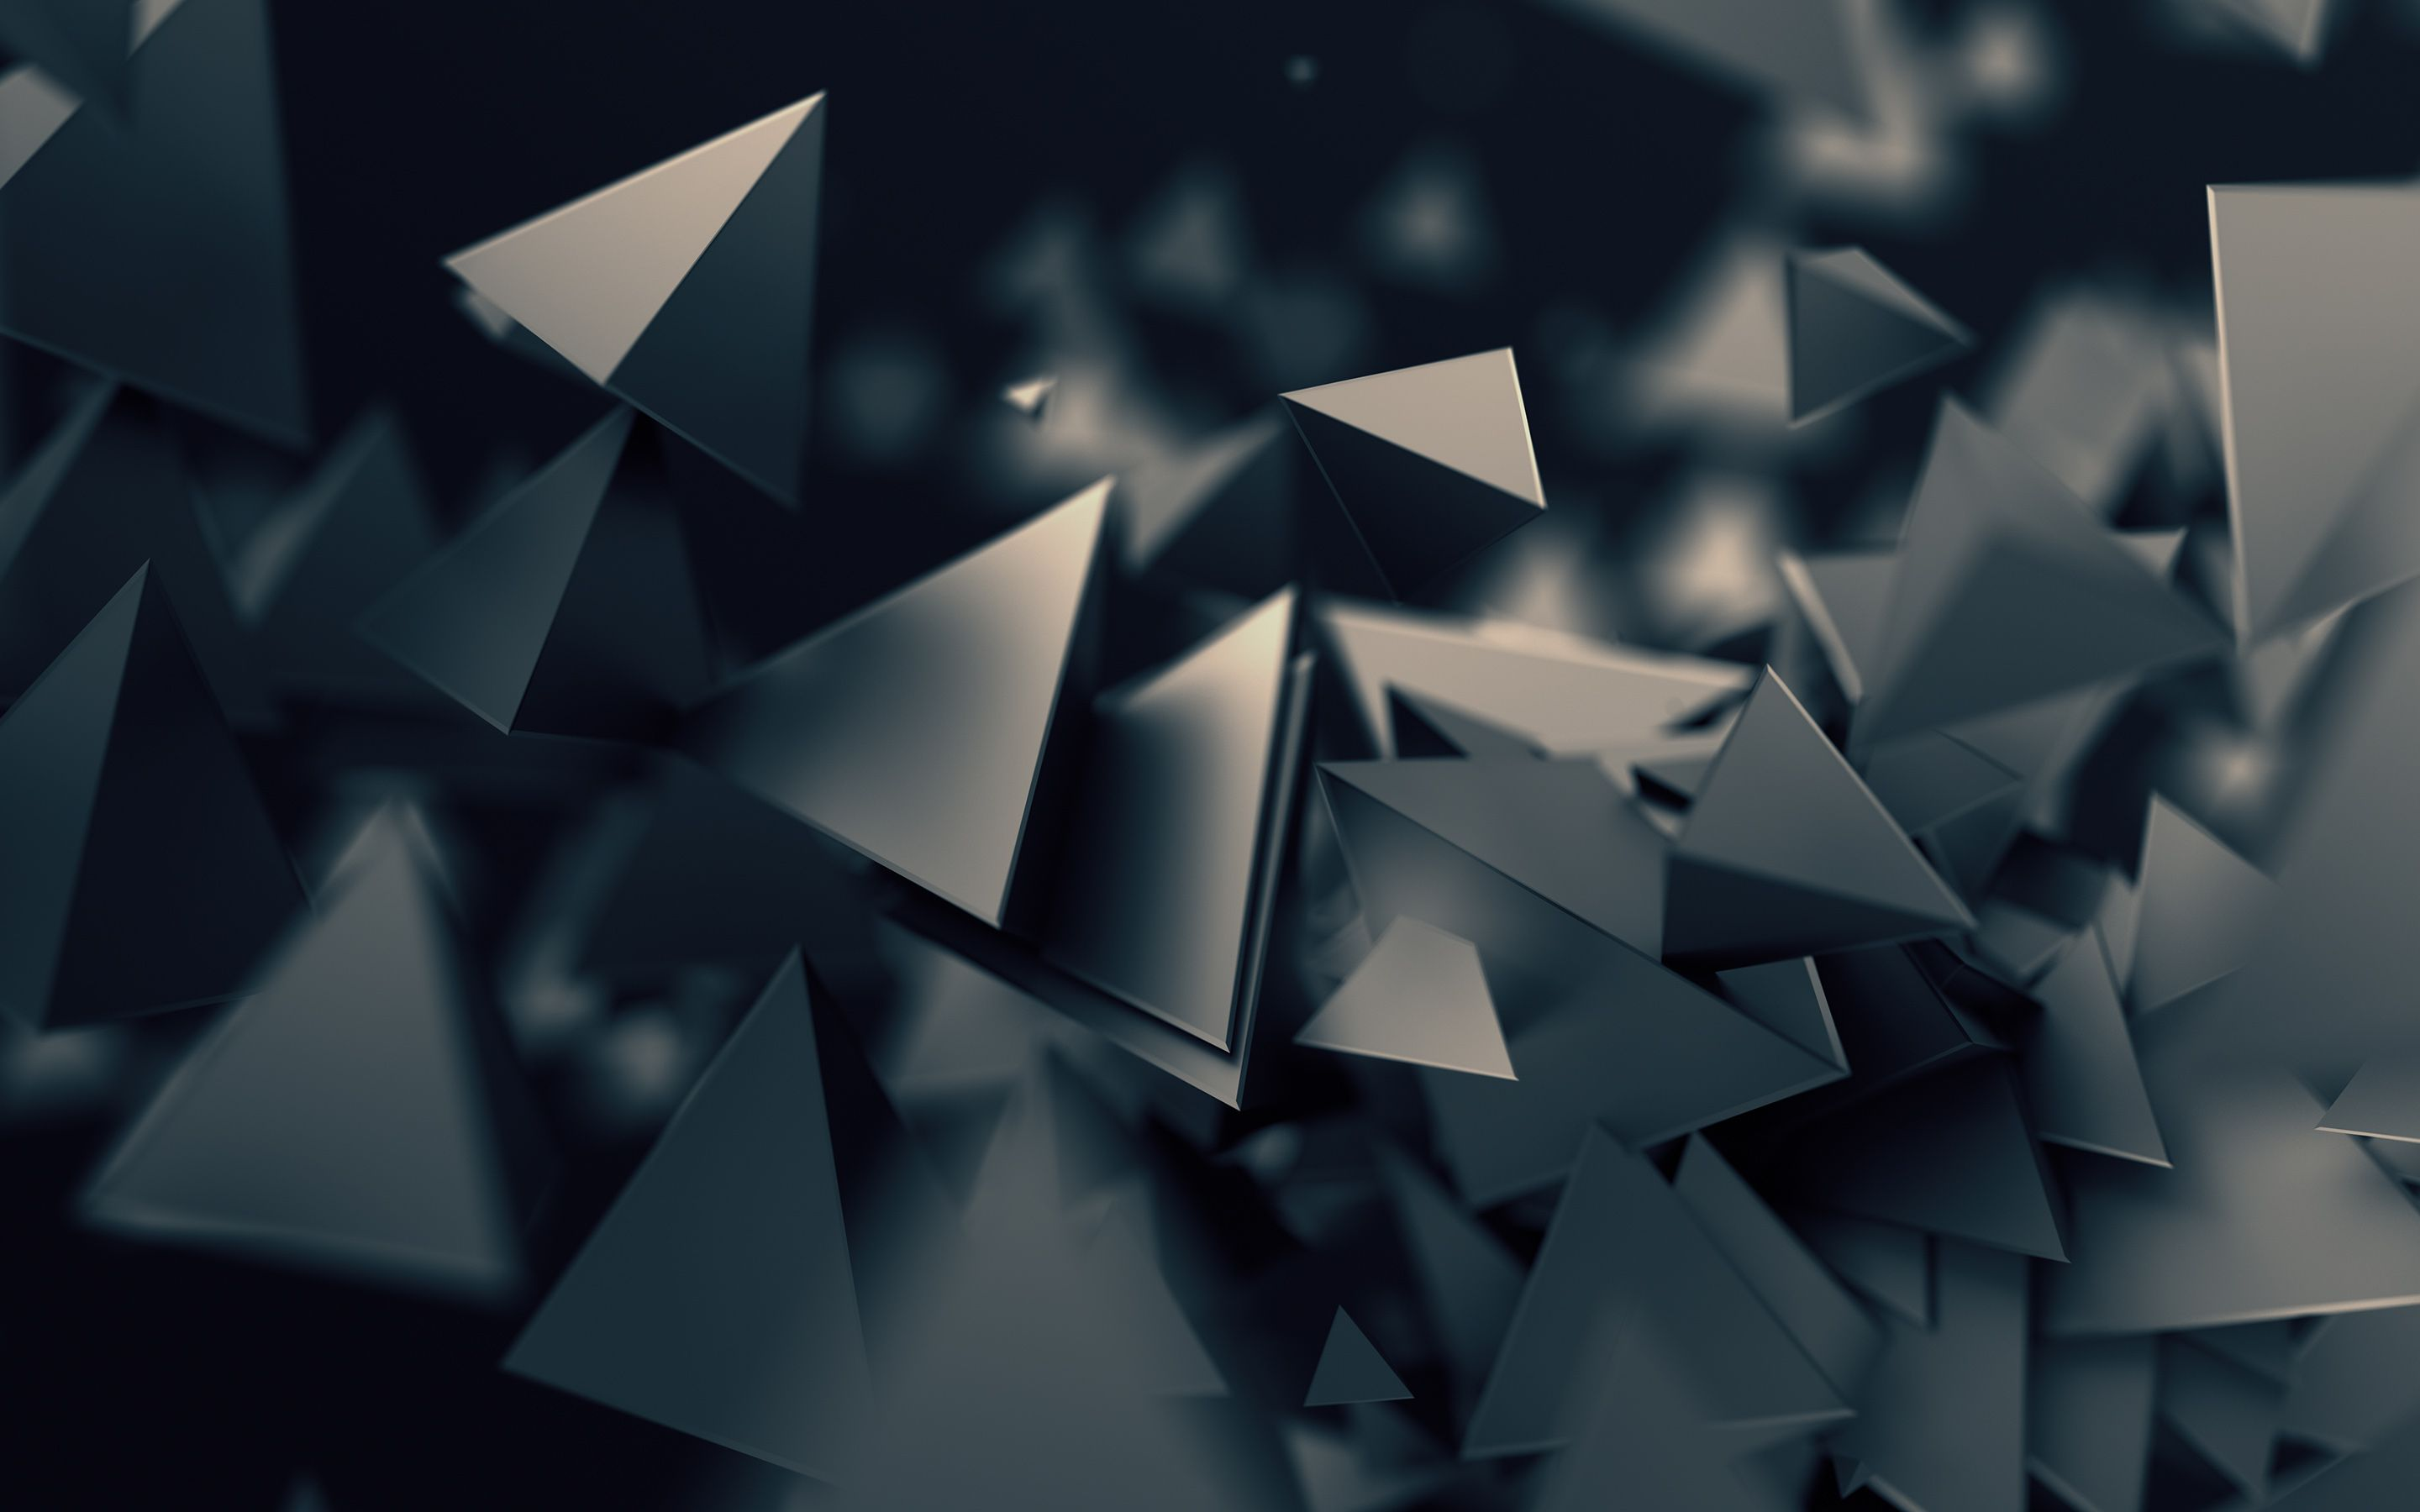 Triangles Low Poly Dark 3d Triangle Dark Wallpaper Abstract